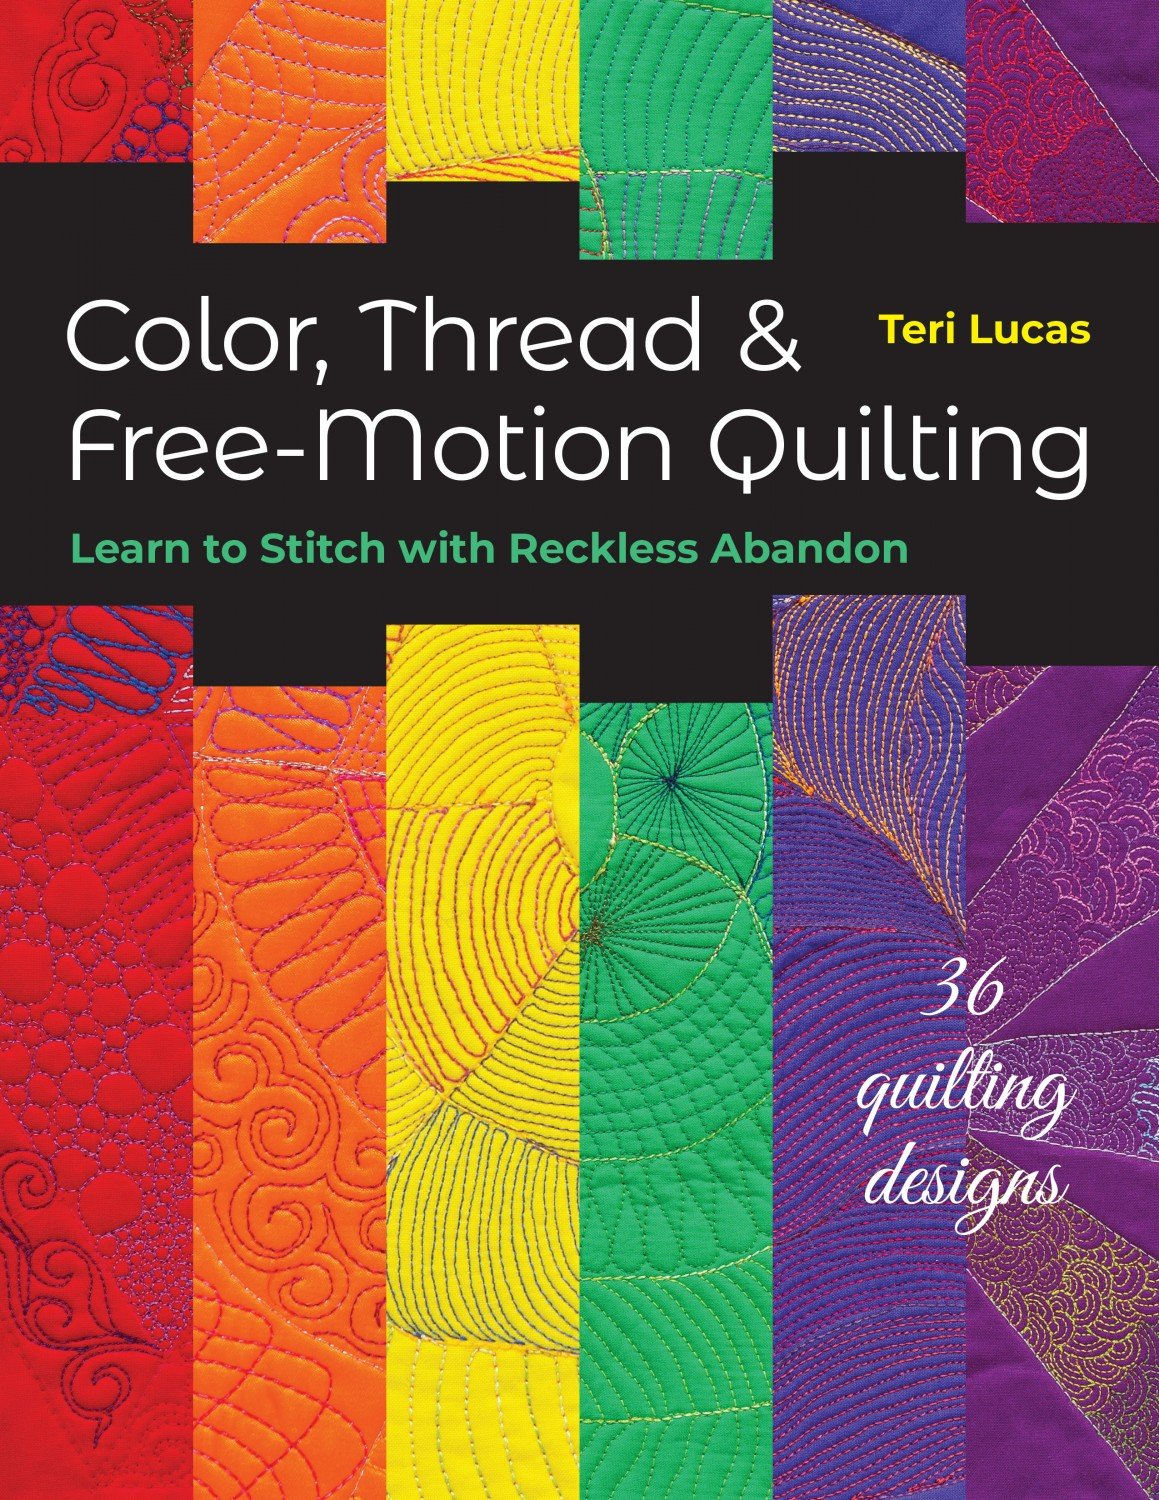 Color, Thread & Free-Motion Quilting ~RELEASE DATE: July 25, 2020~